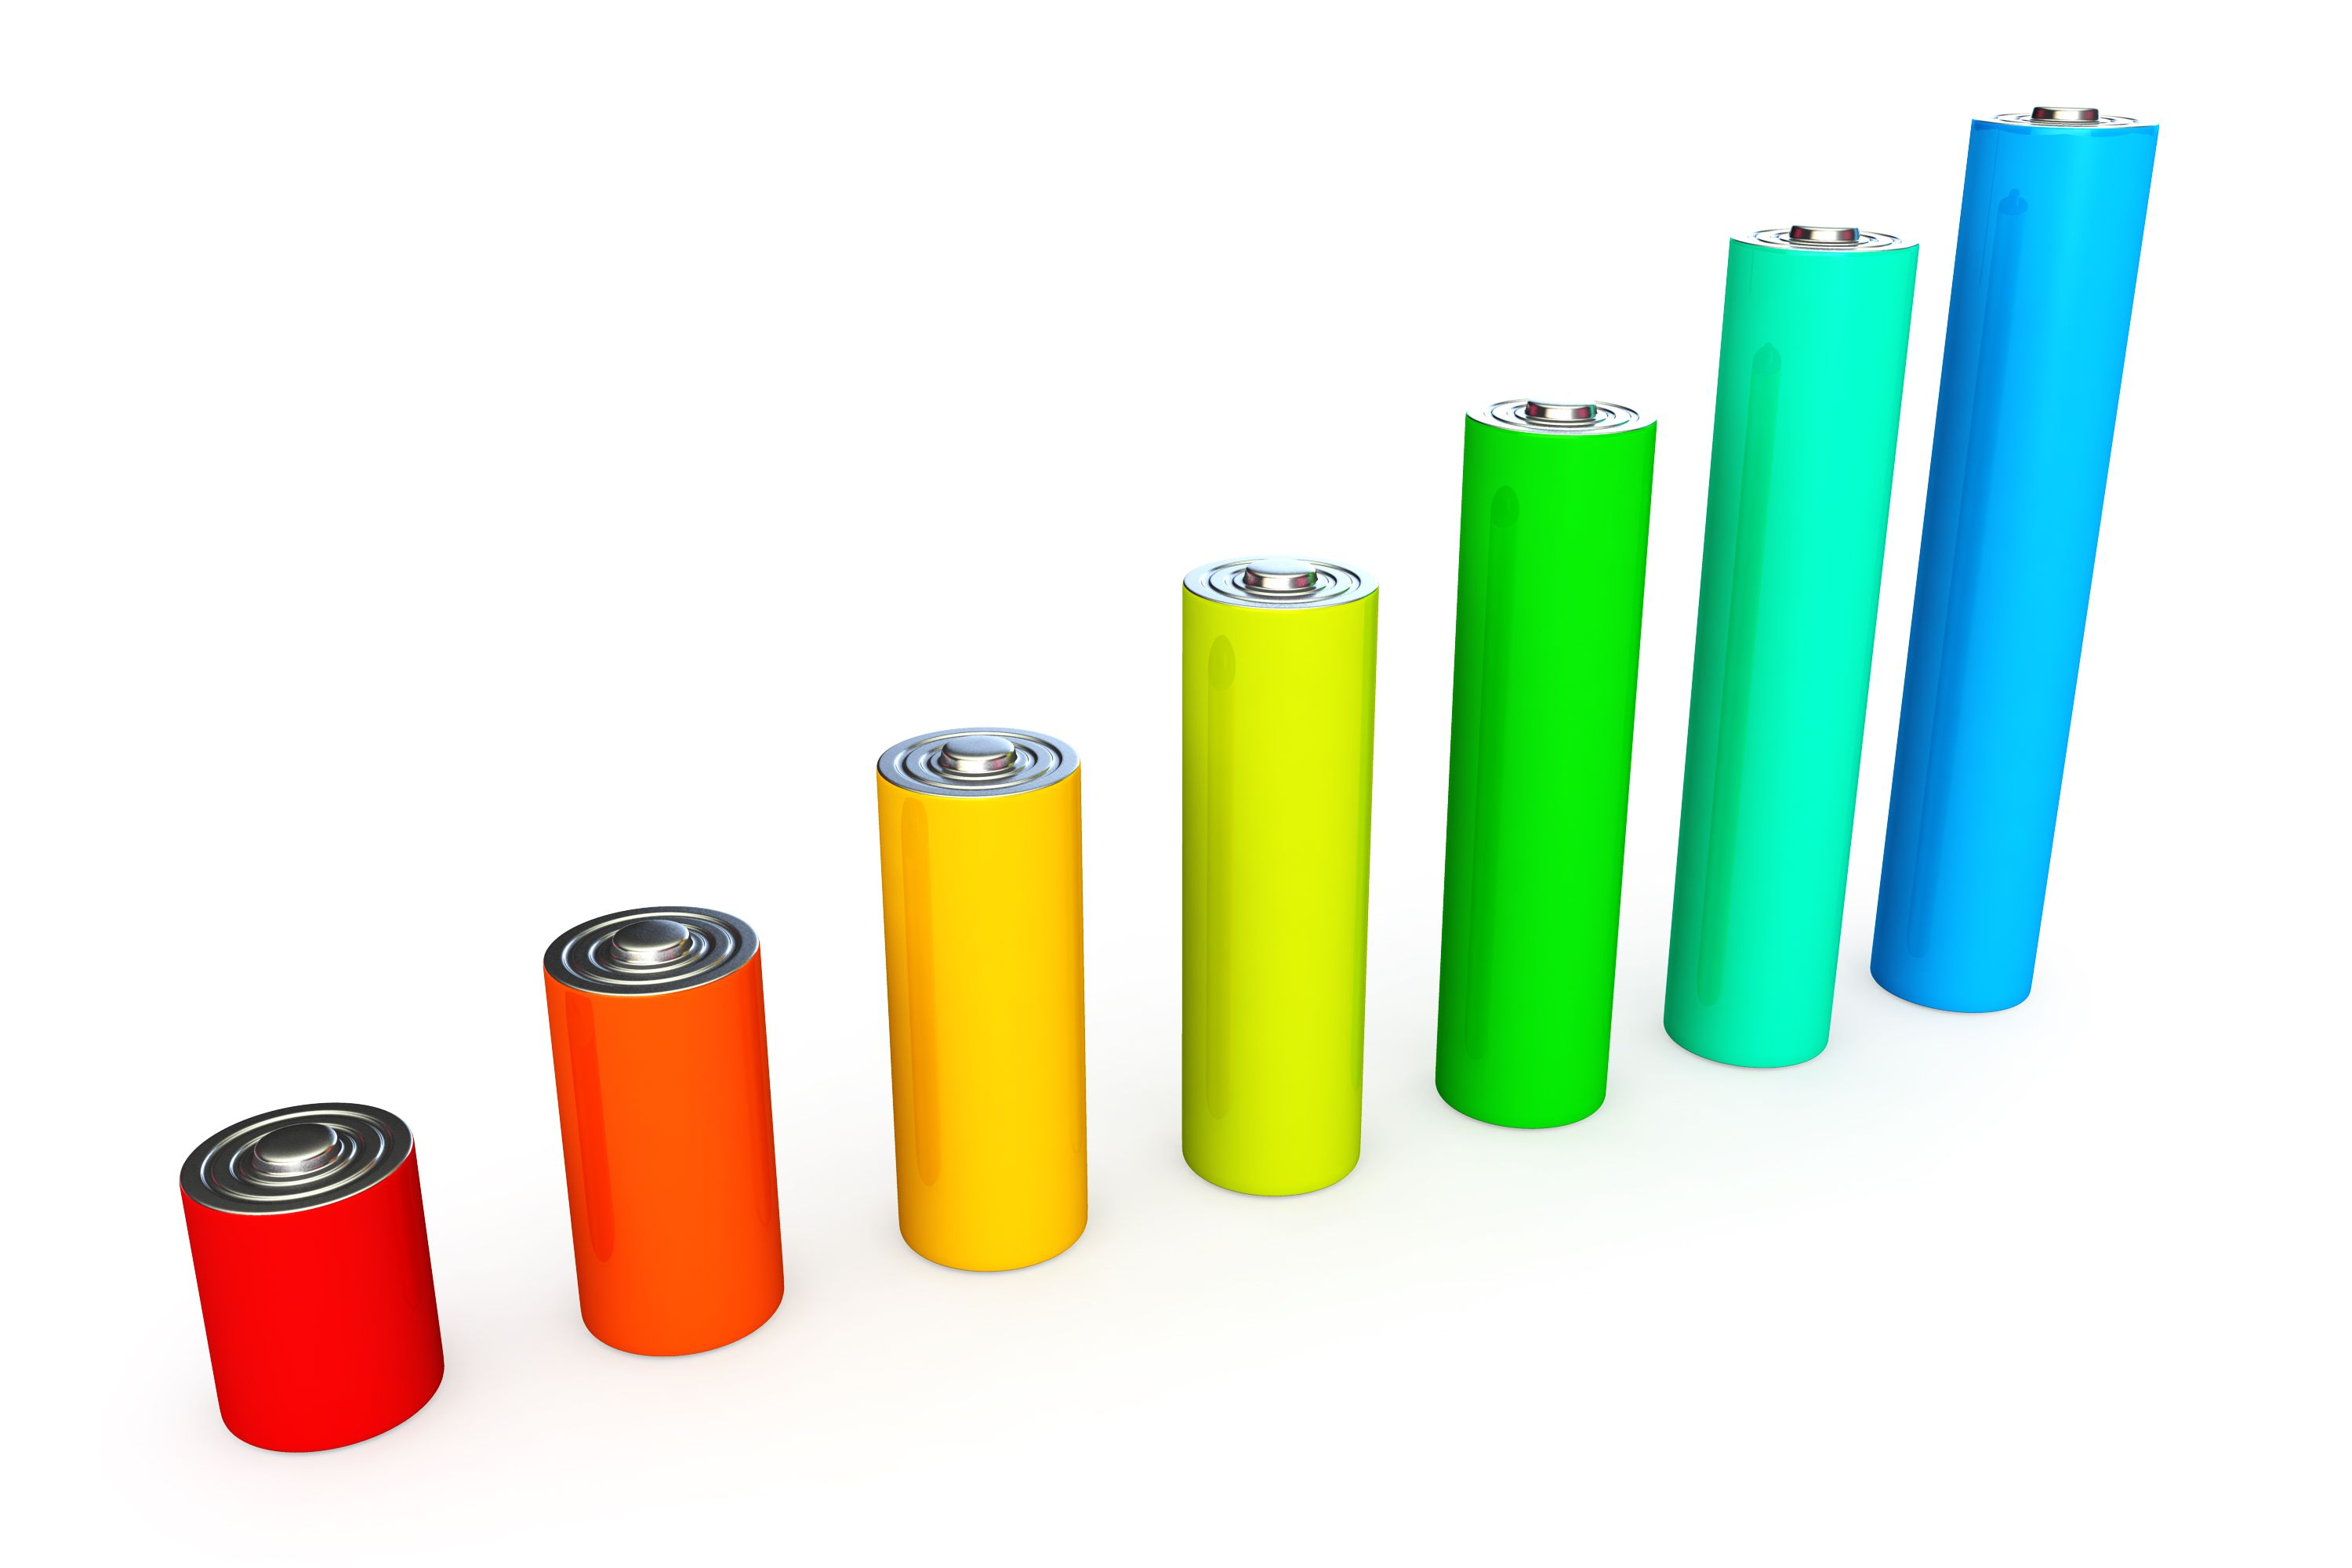 1114_bar_graph_of_colorful_battery_cells_stock_photo_Slide01